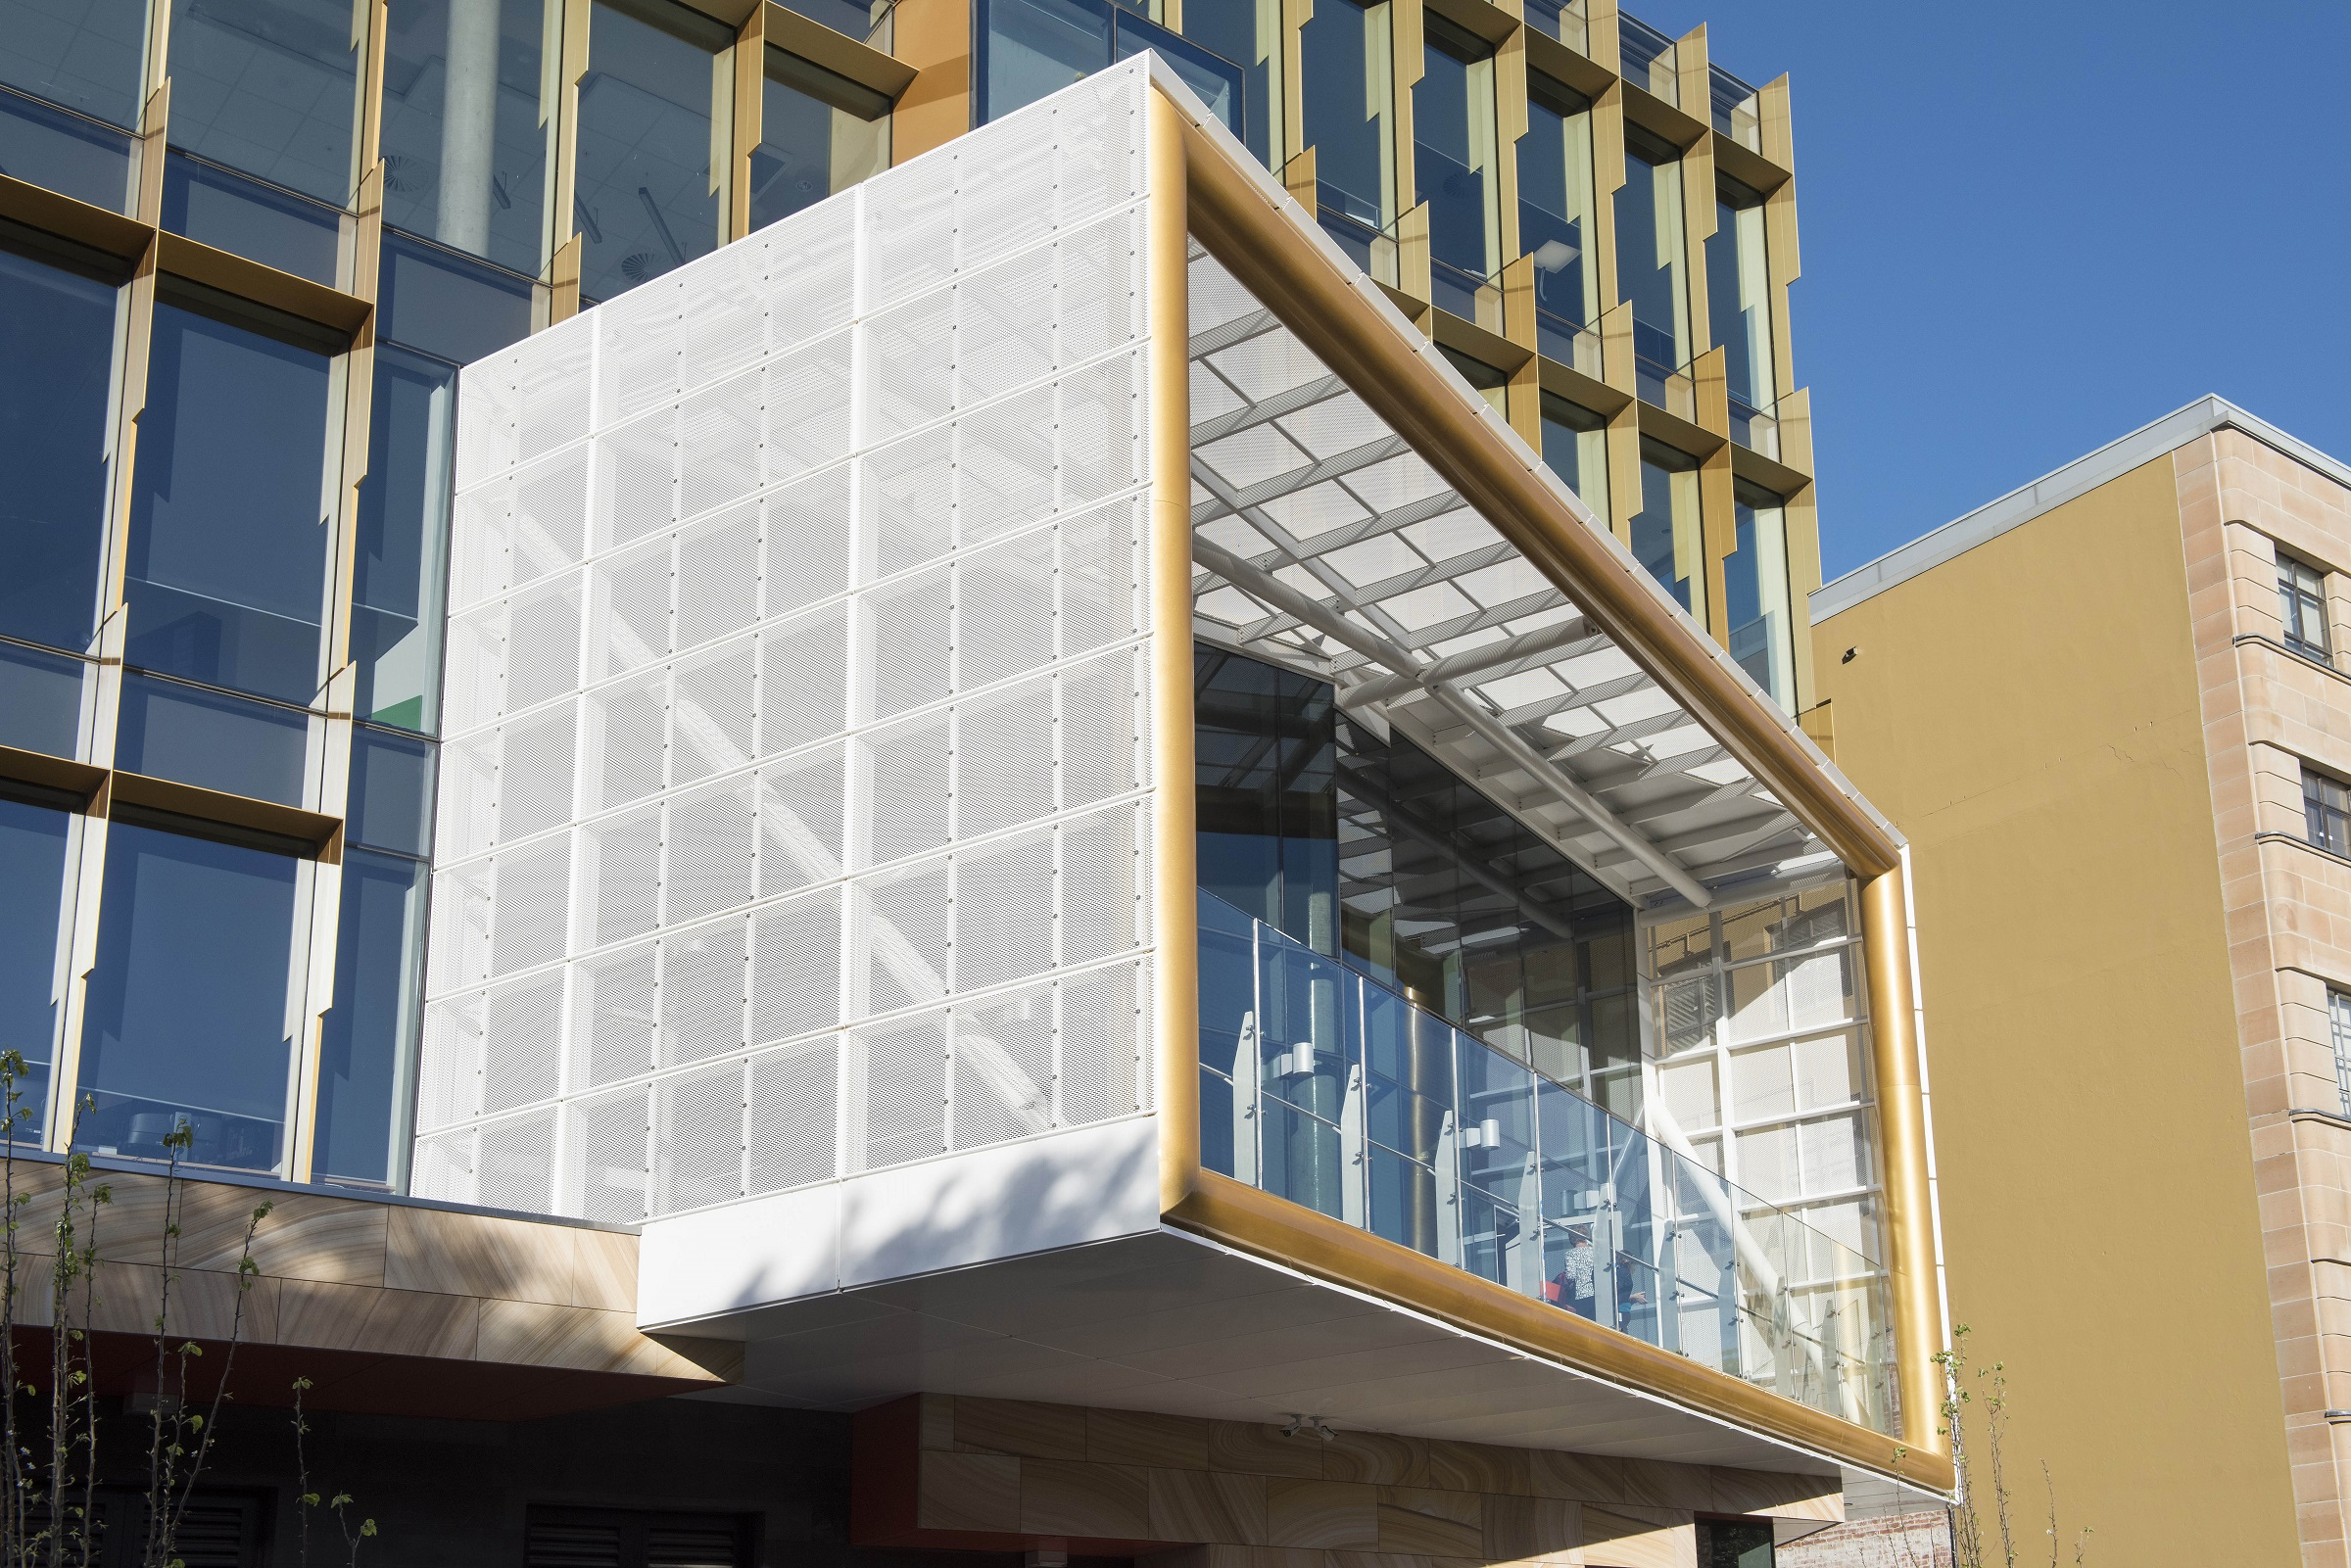 Newcastle Architecture Awards - perforated metal by Arrow Metal